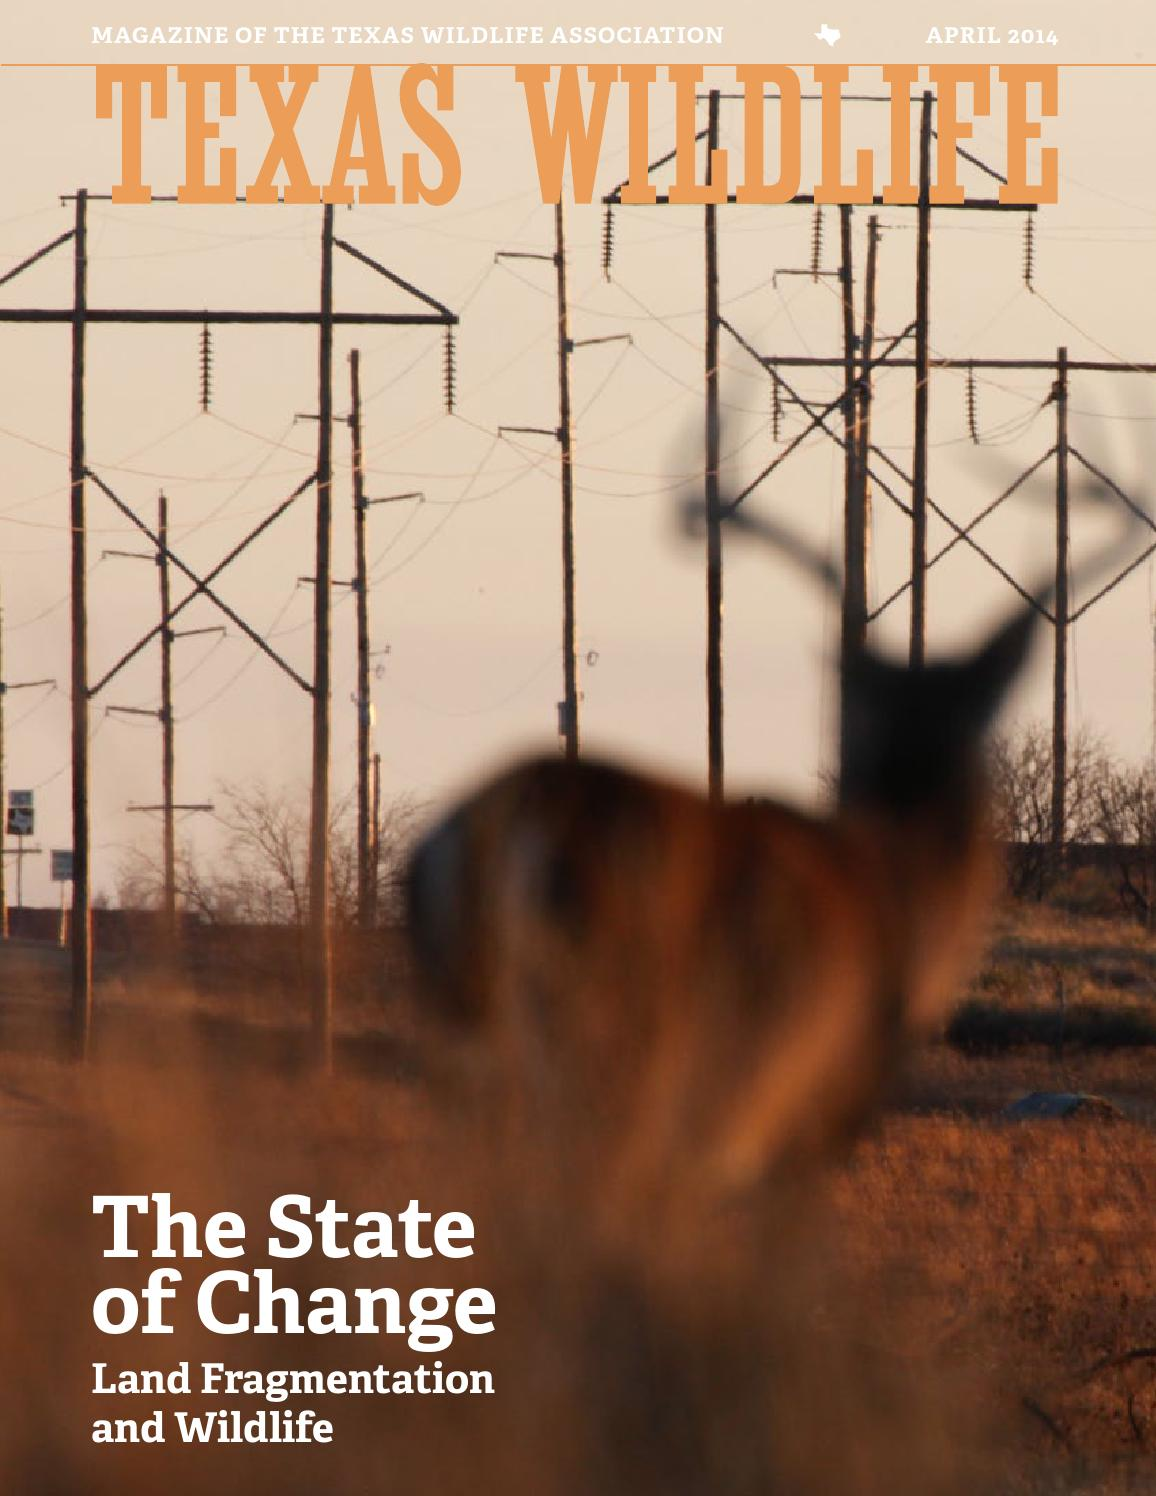 Texas Wildlife April 2014 By Association Issuu The Fourwire Electric Fence System Allows Landowners To Control Deer